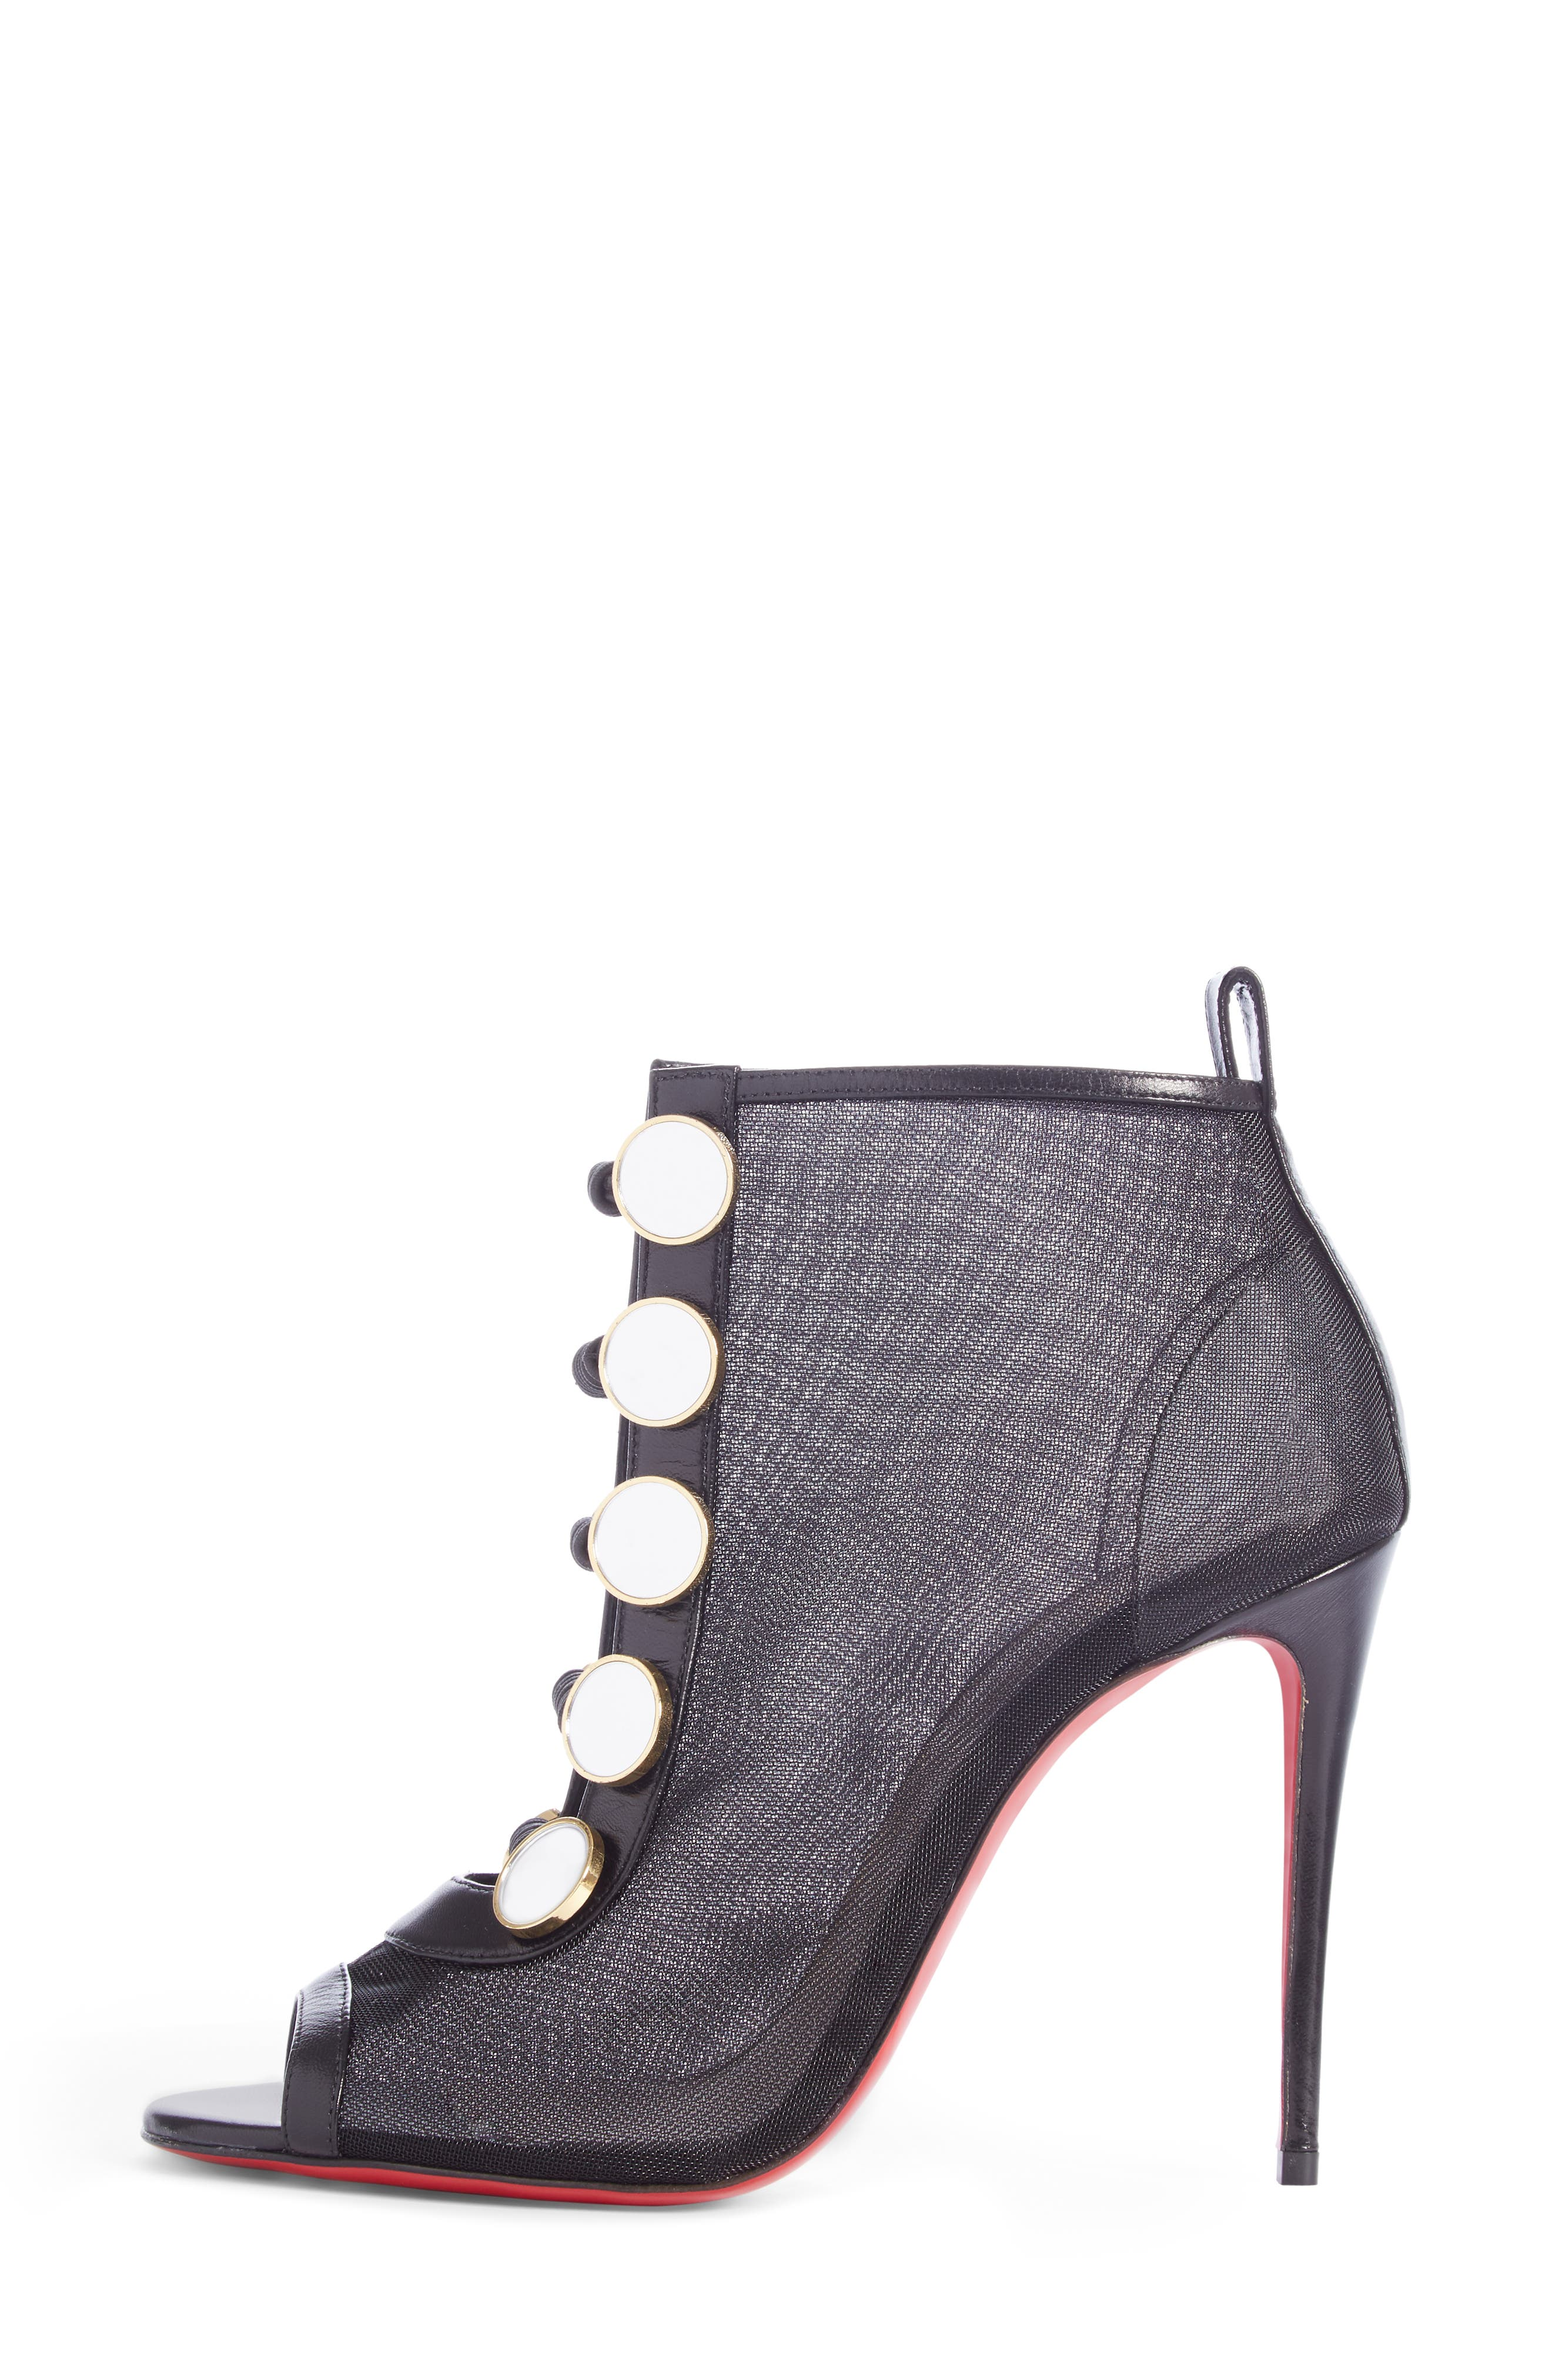 CHRISTIAN LOUBOUTIN, Marika Open Toe Bootie, Alternate thumbnail 3, color, BLACK